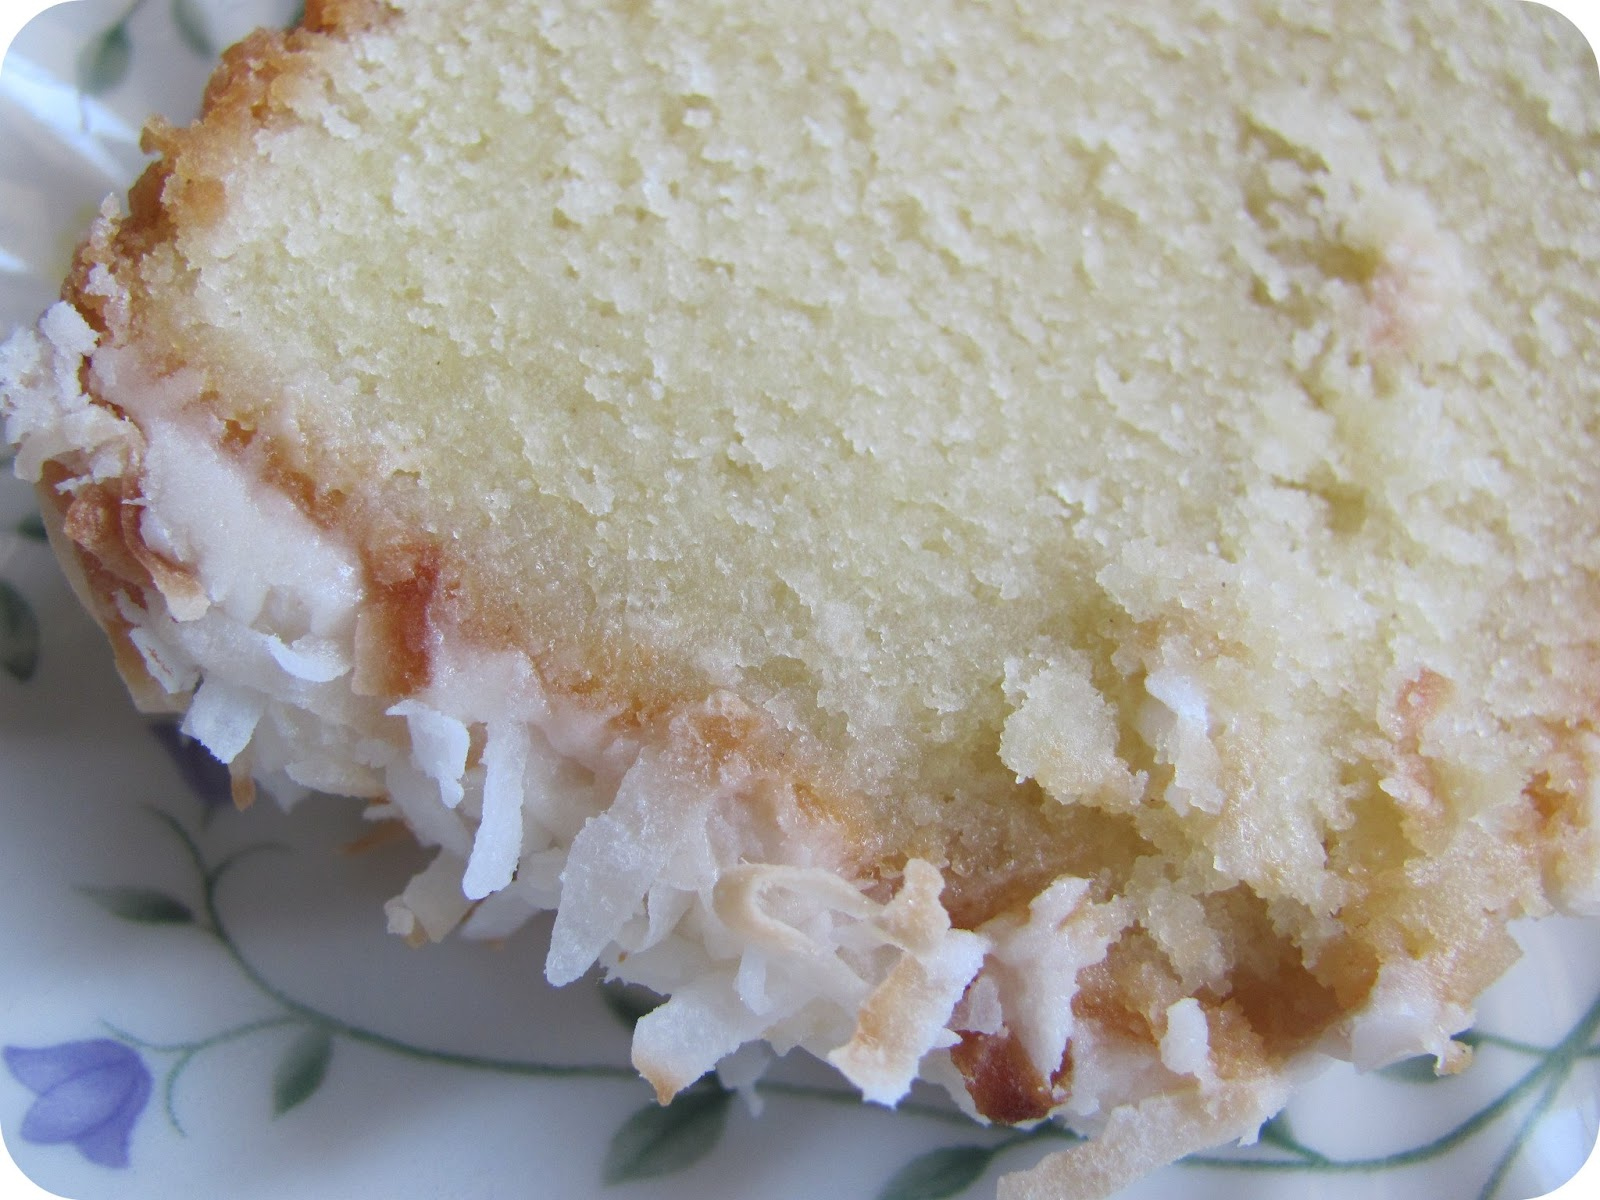 Carrot Cake Recipe From Scratch Step By Step With